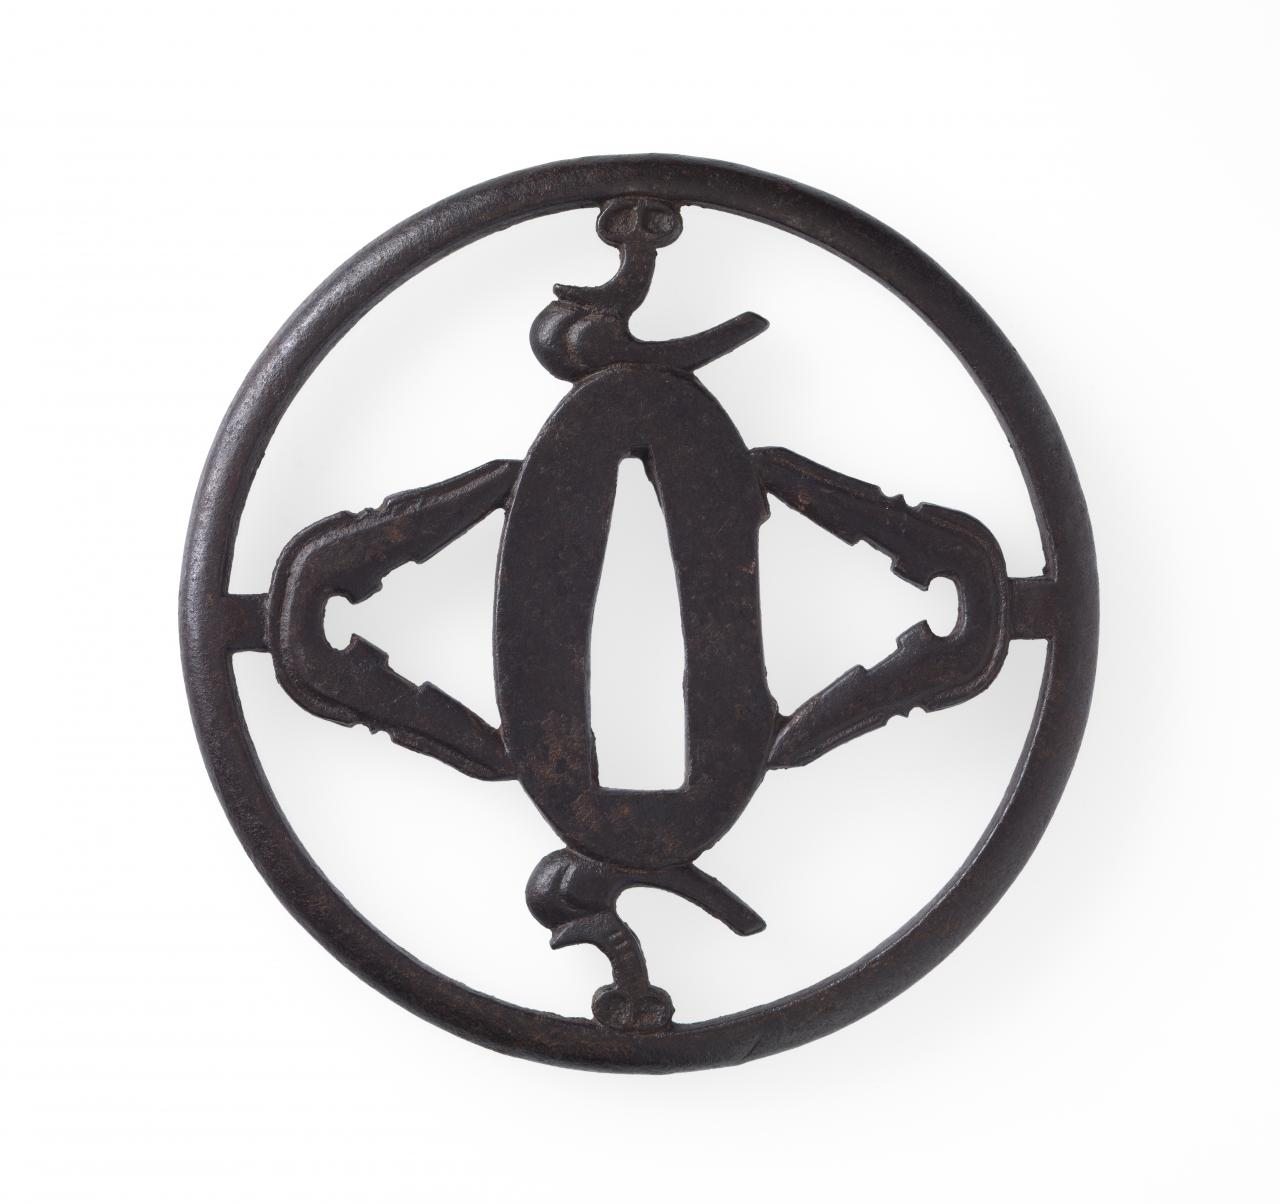 Sword guard with saddle and stirrup design